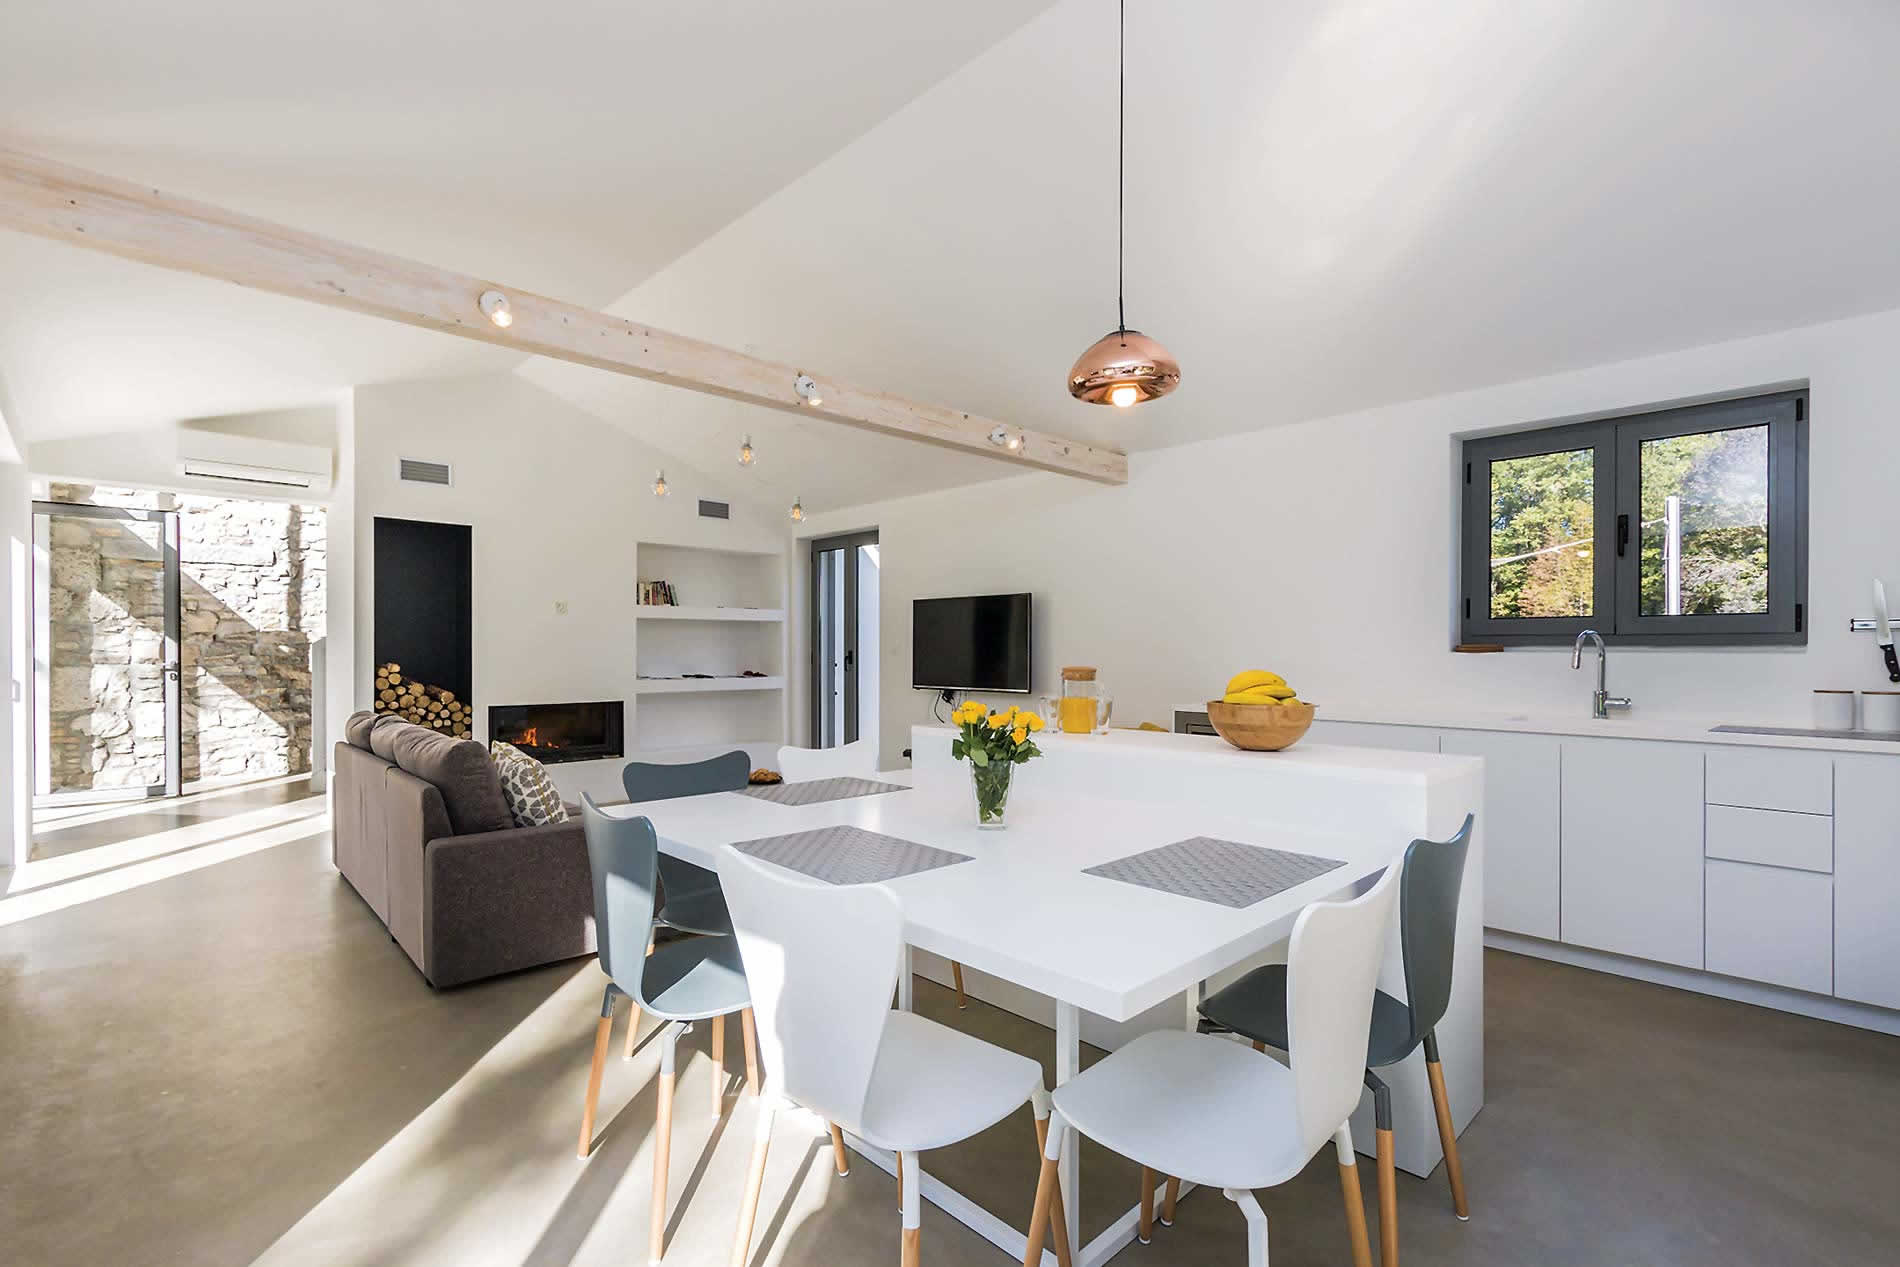 Modern and luxuriously fitted kitchen and fireplace